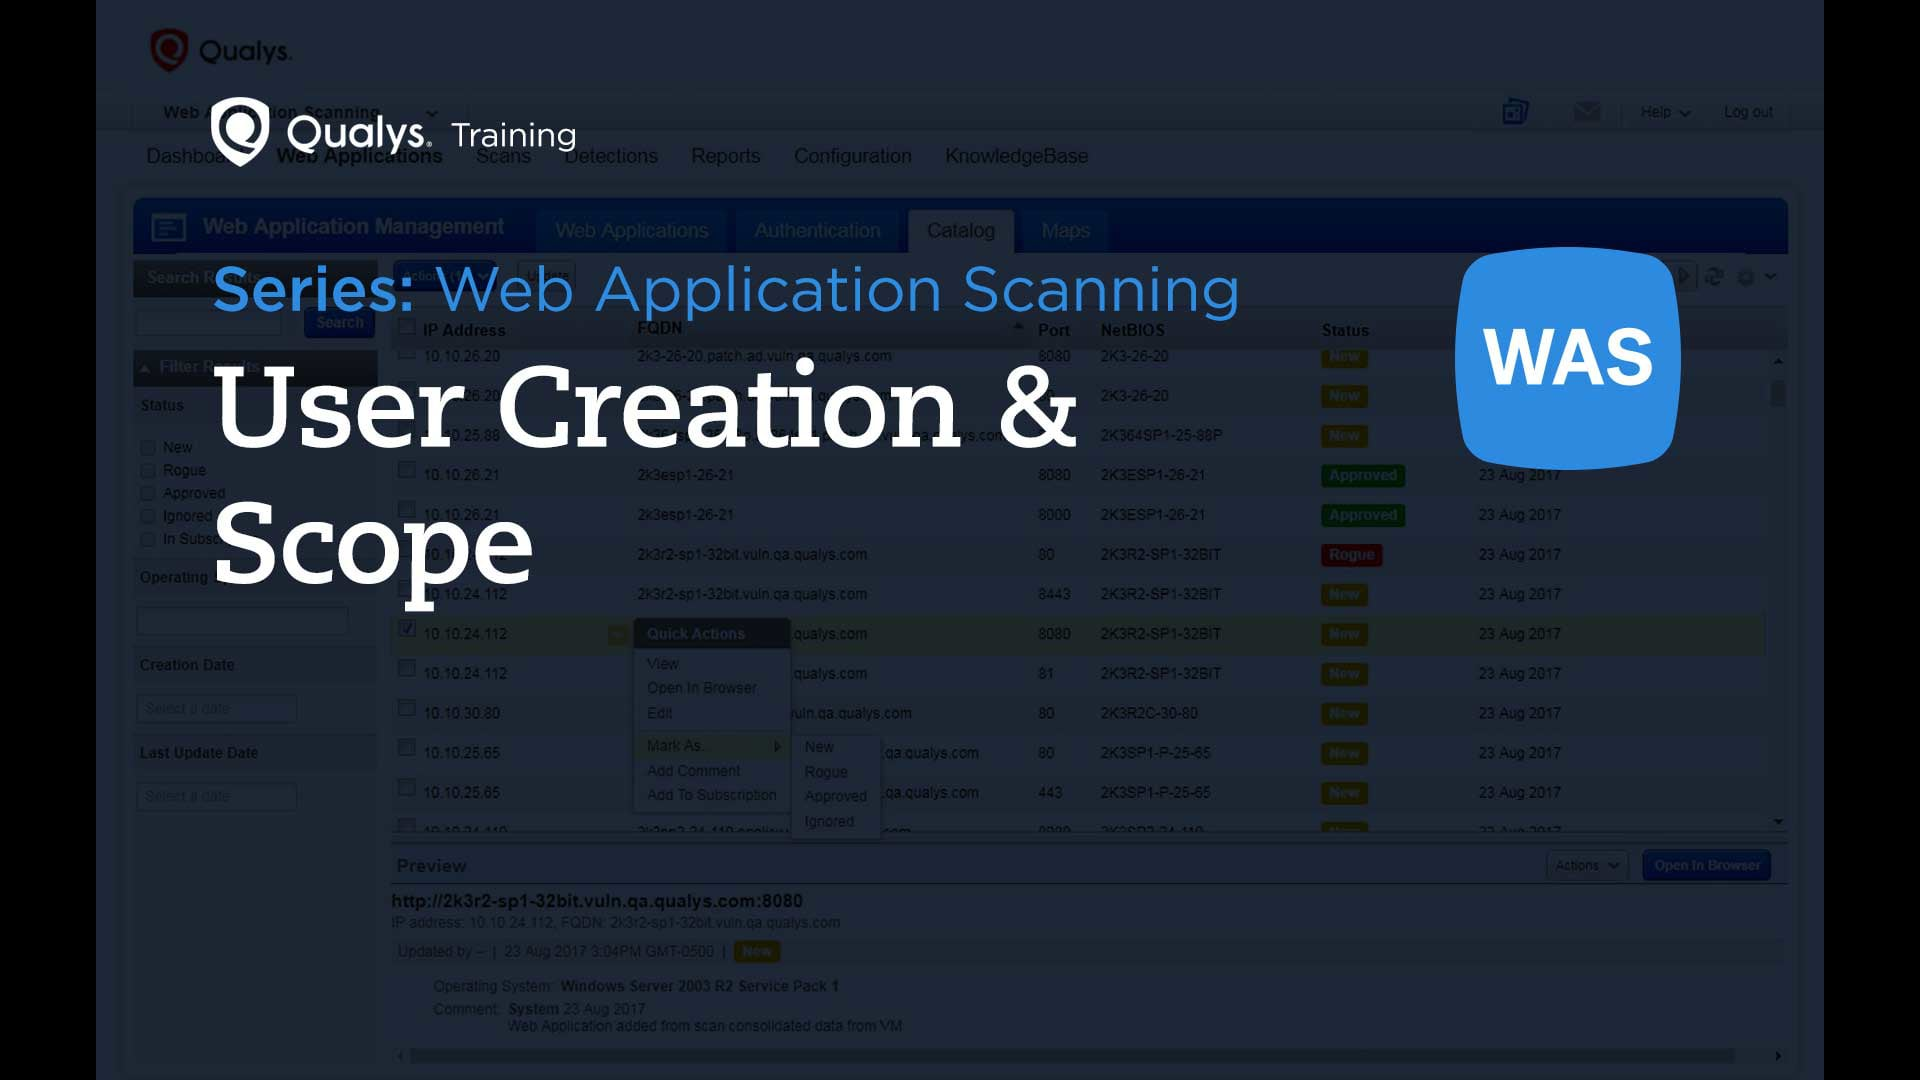 User Creation and Scope